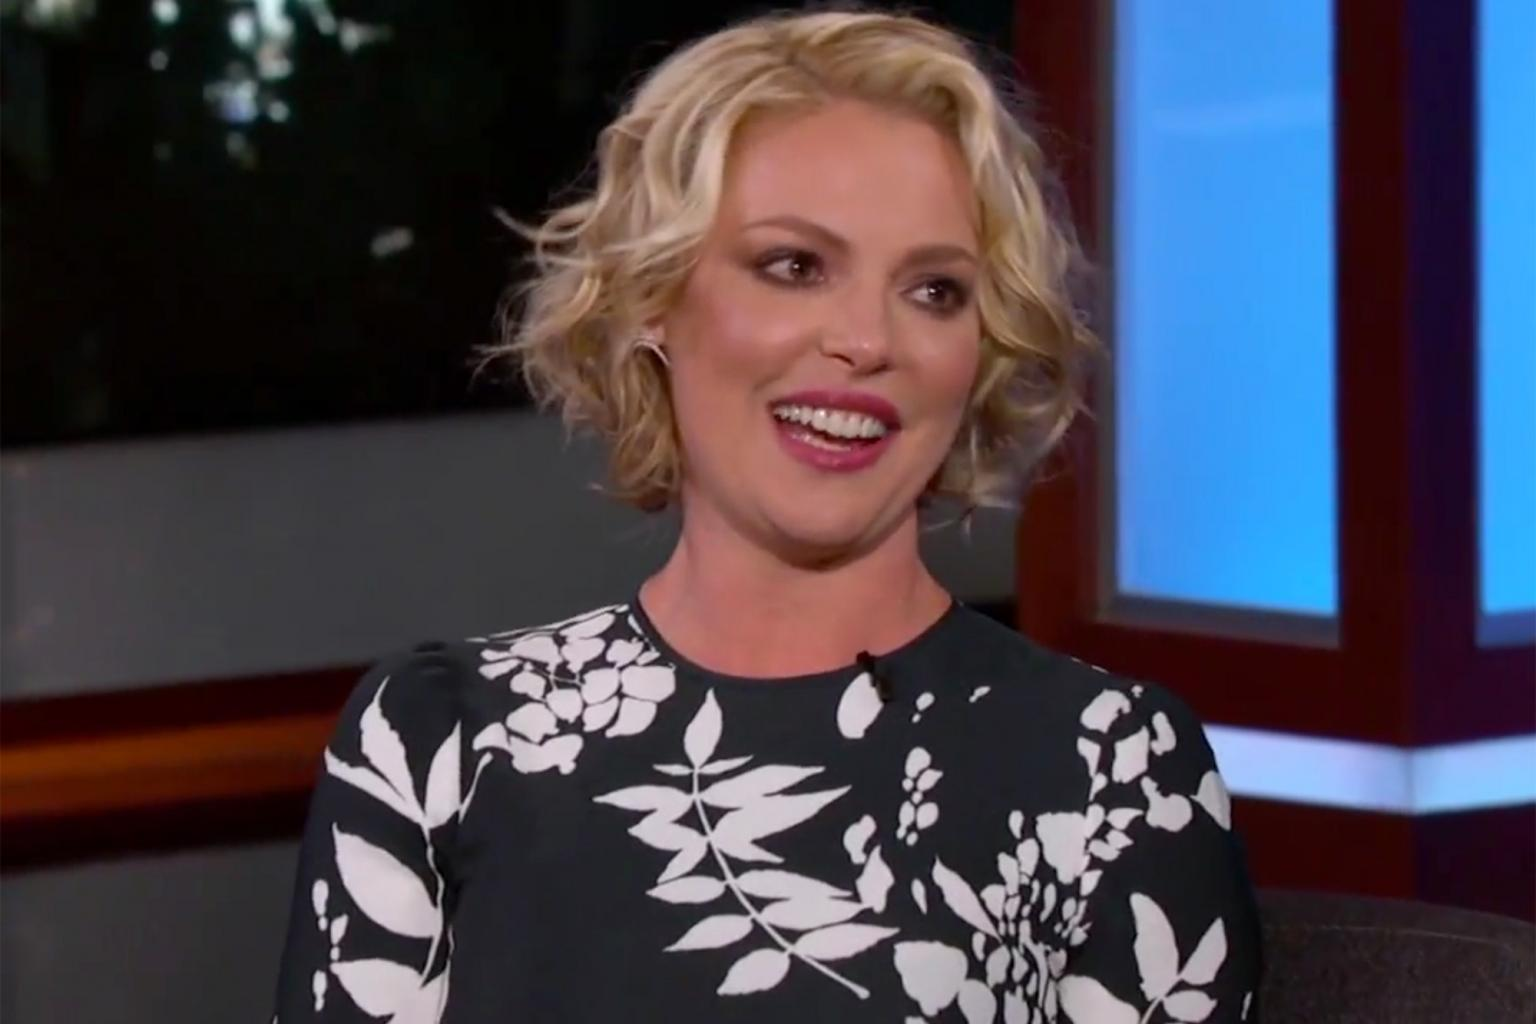 Katherine Heigl Struggled Naming Her Son: 'You Don't Want to Fail This Child with the Wrong Name'